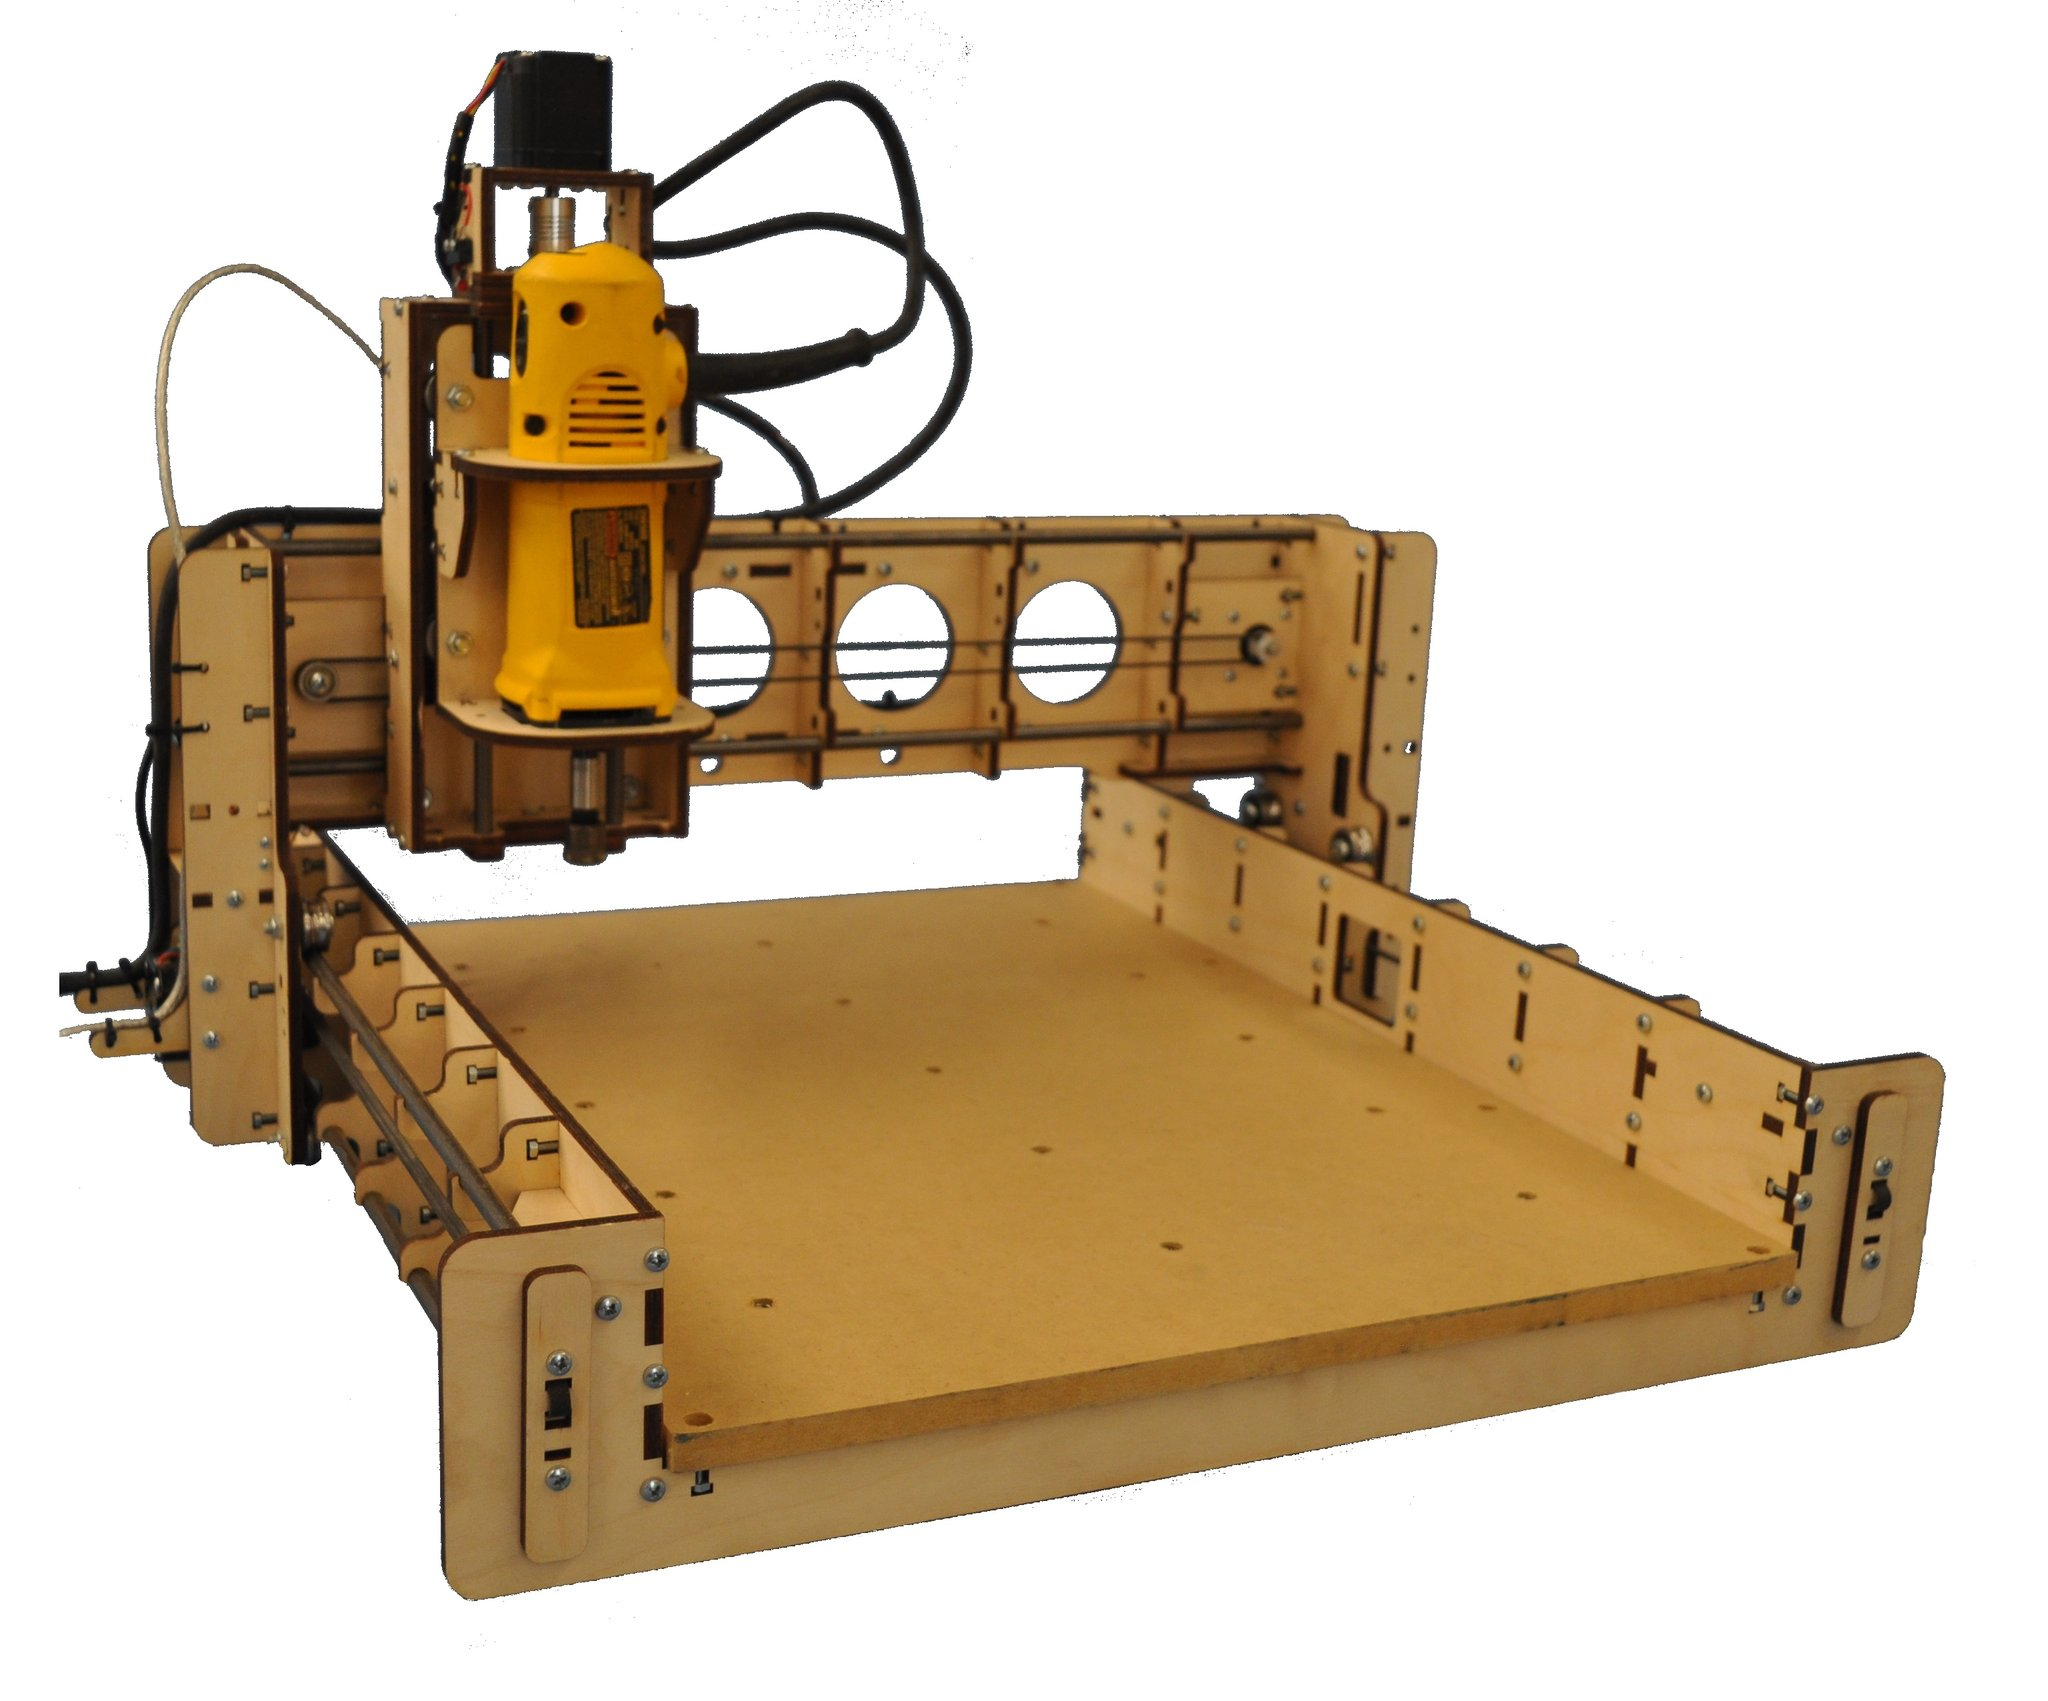 BobsCNC Evolution 3 CNC Router Kit with the Router Included